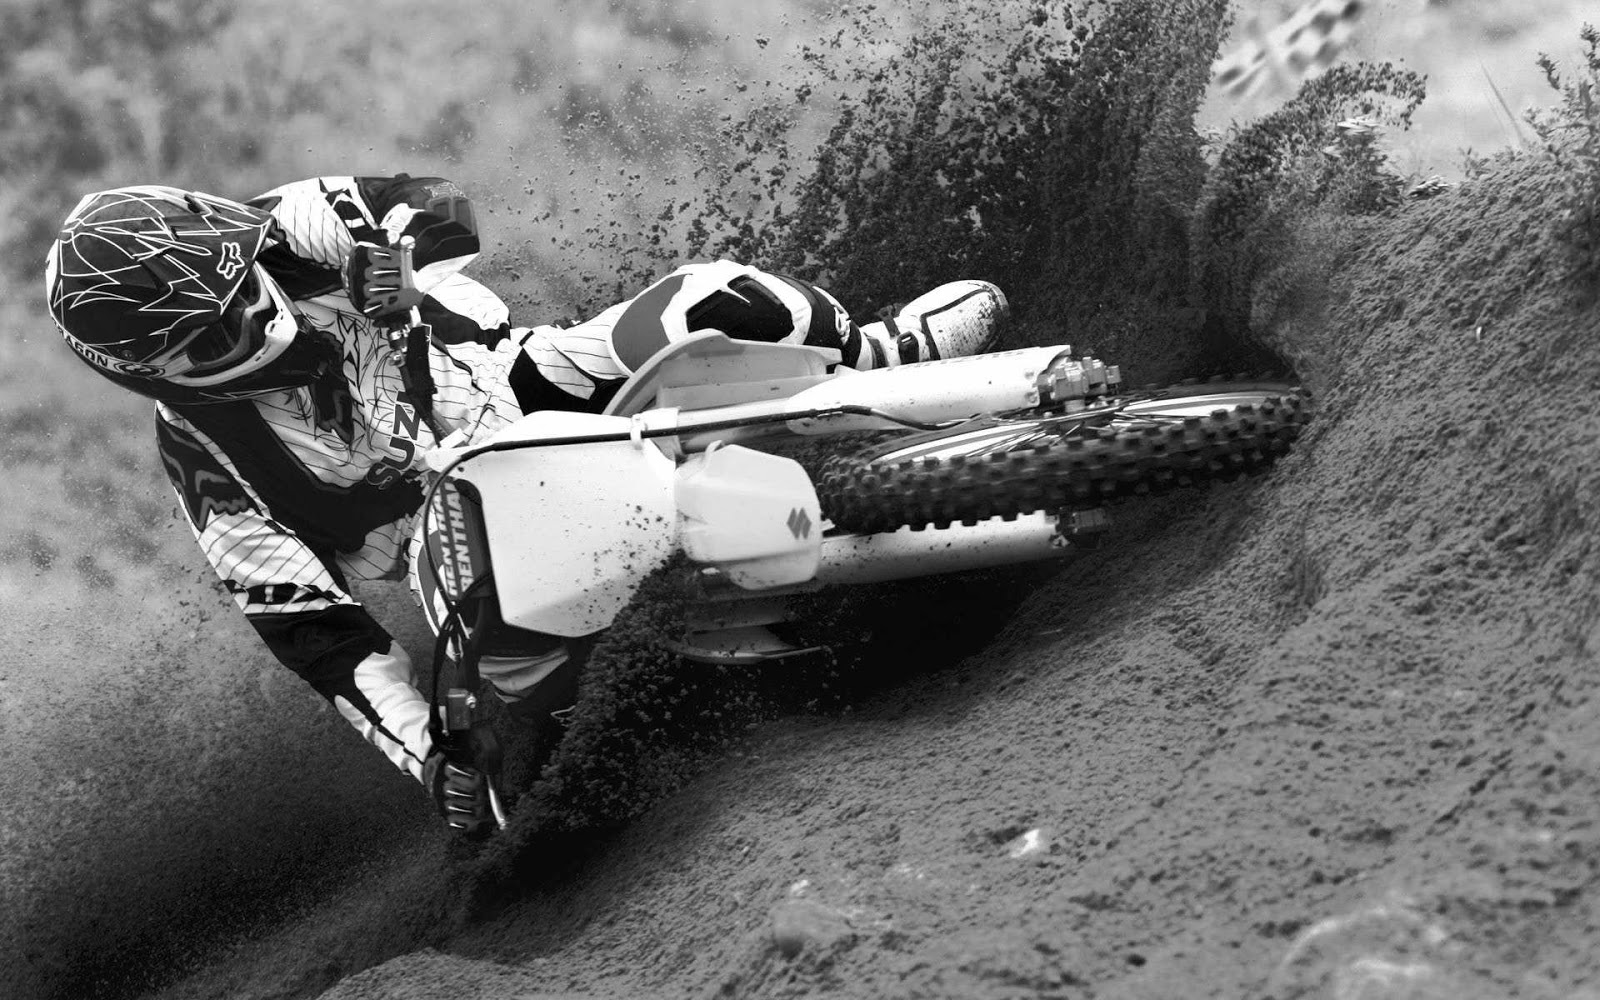 Riding through the mud dirt bike black and white wallpaper